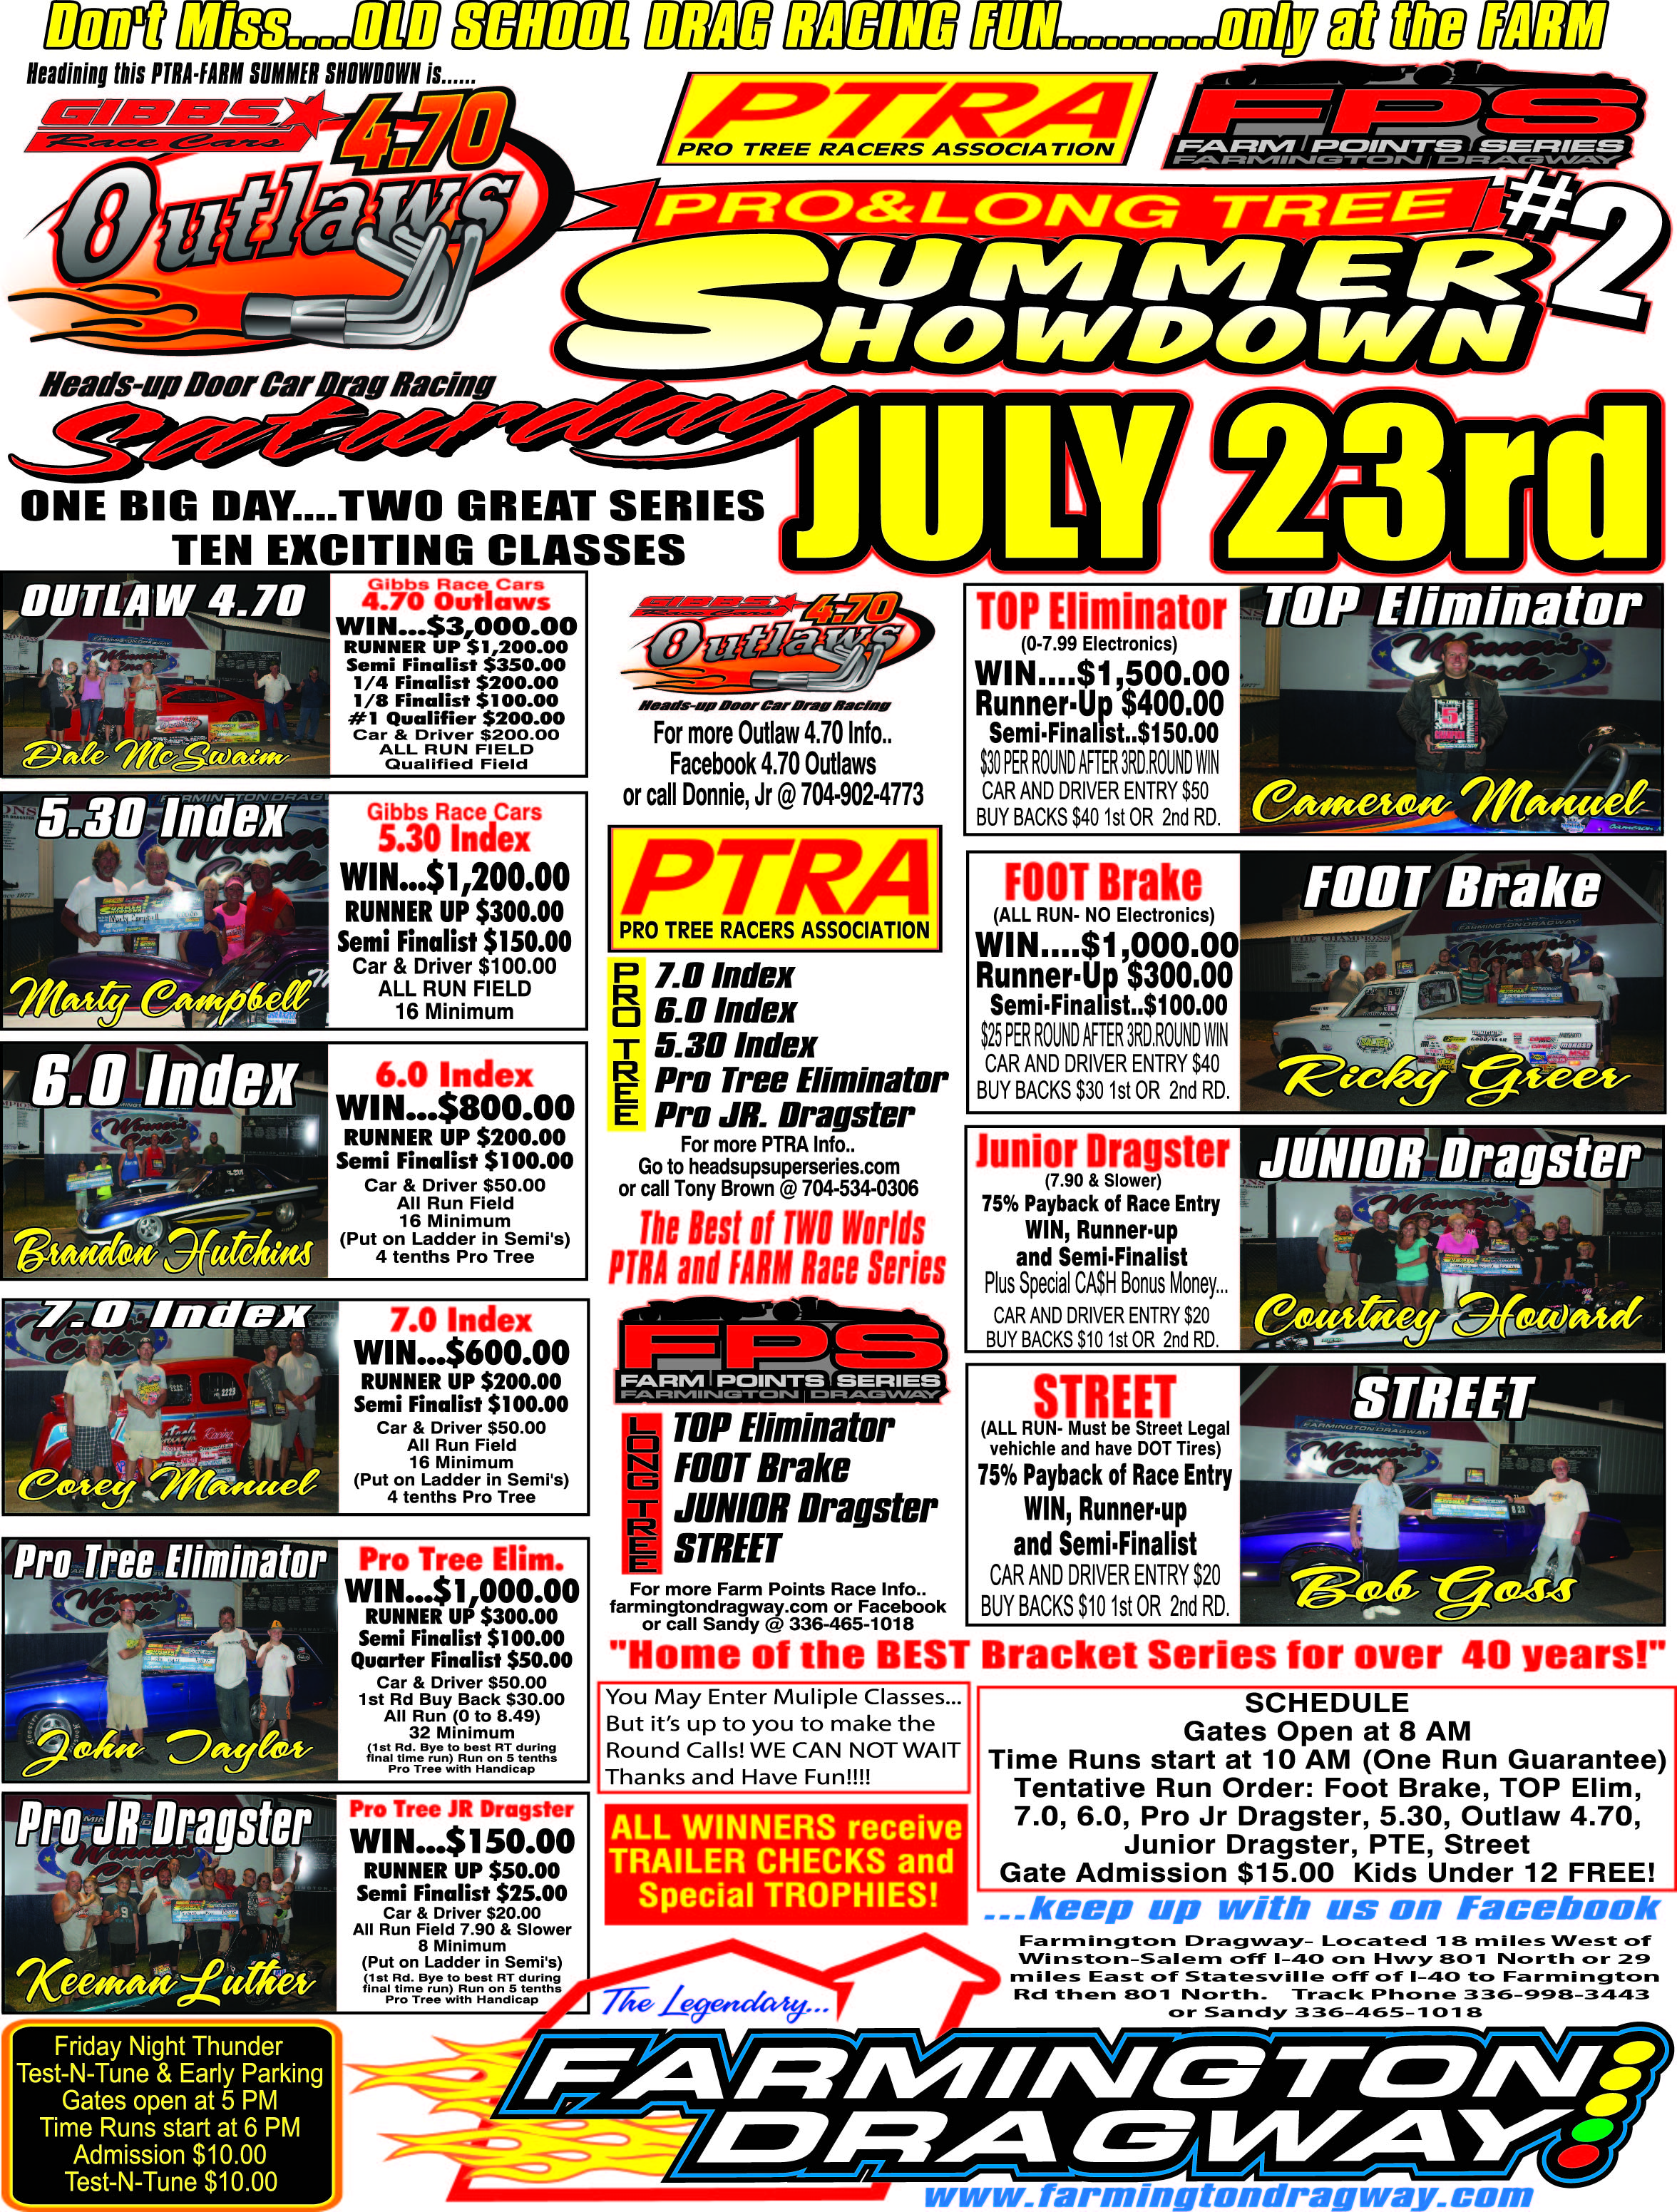 2016 July 23rd event flyer